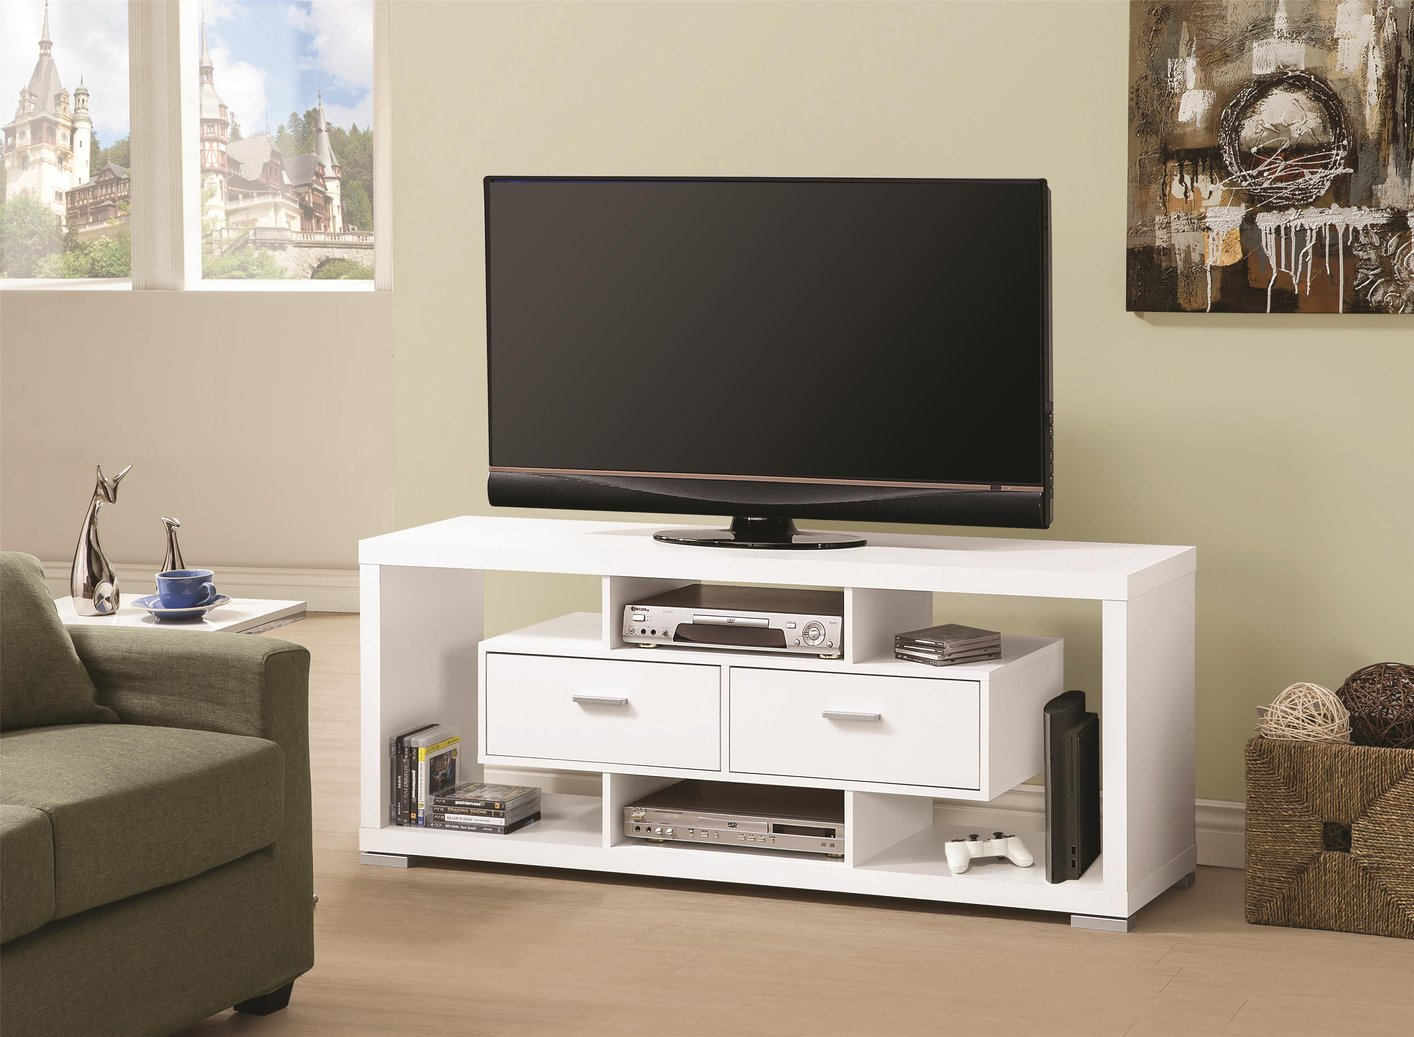 Fabulous Coaster White Wood Tv Stand Stealasofa Furniture Outlet With Wood  Tv Stand.